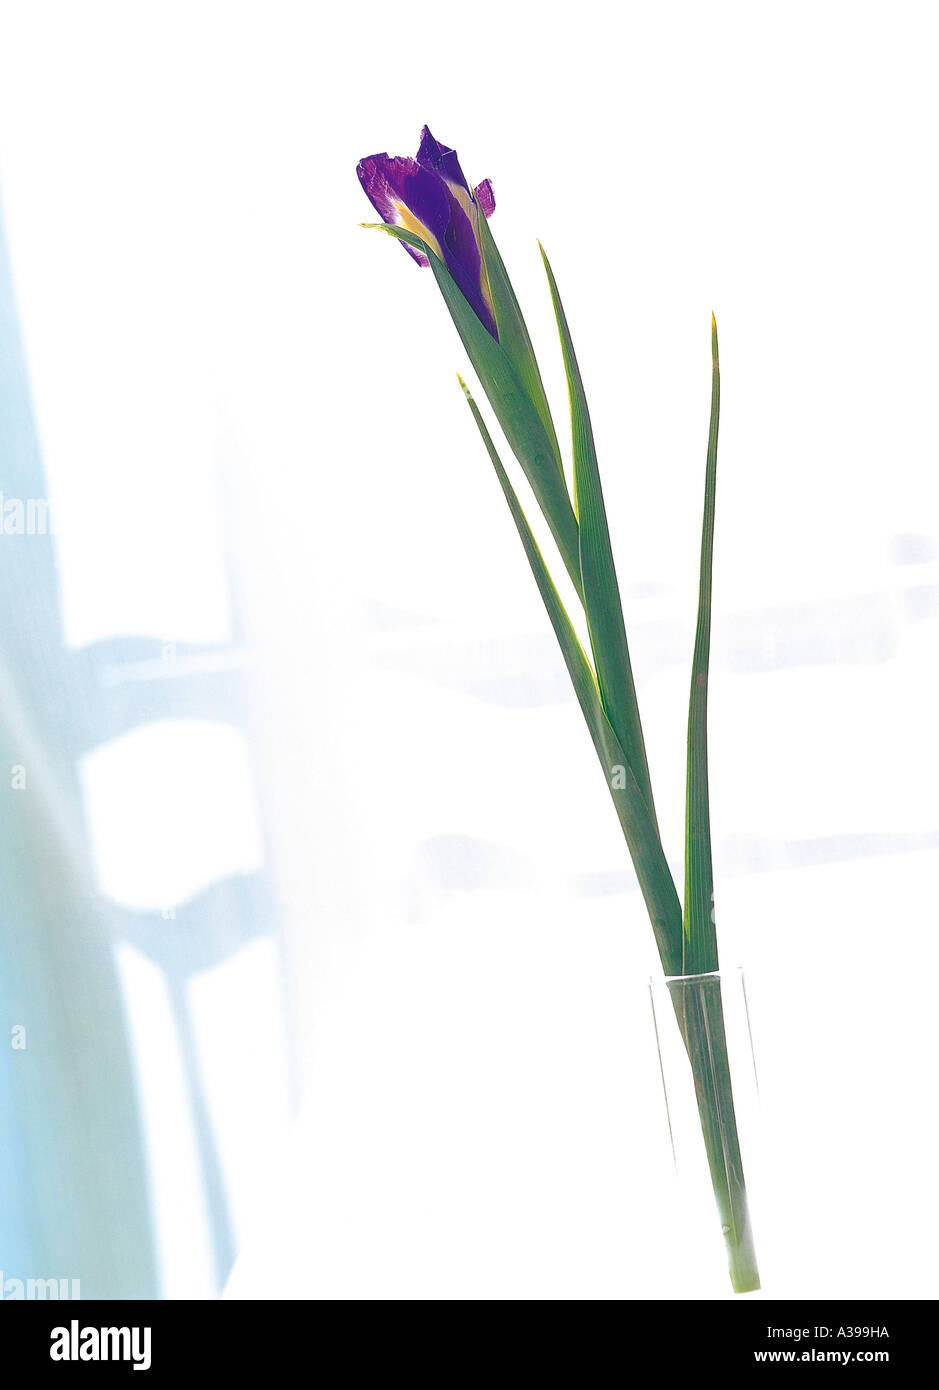 A flower is blooming from a stem in the skinny glass stock photo a flower is blooming from a stem in the skinny glass izmirmasajfo